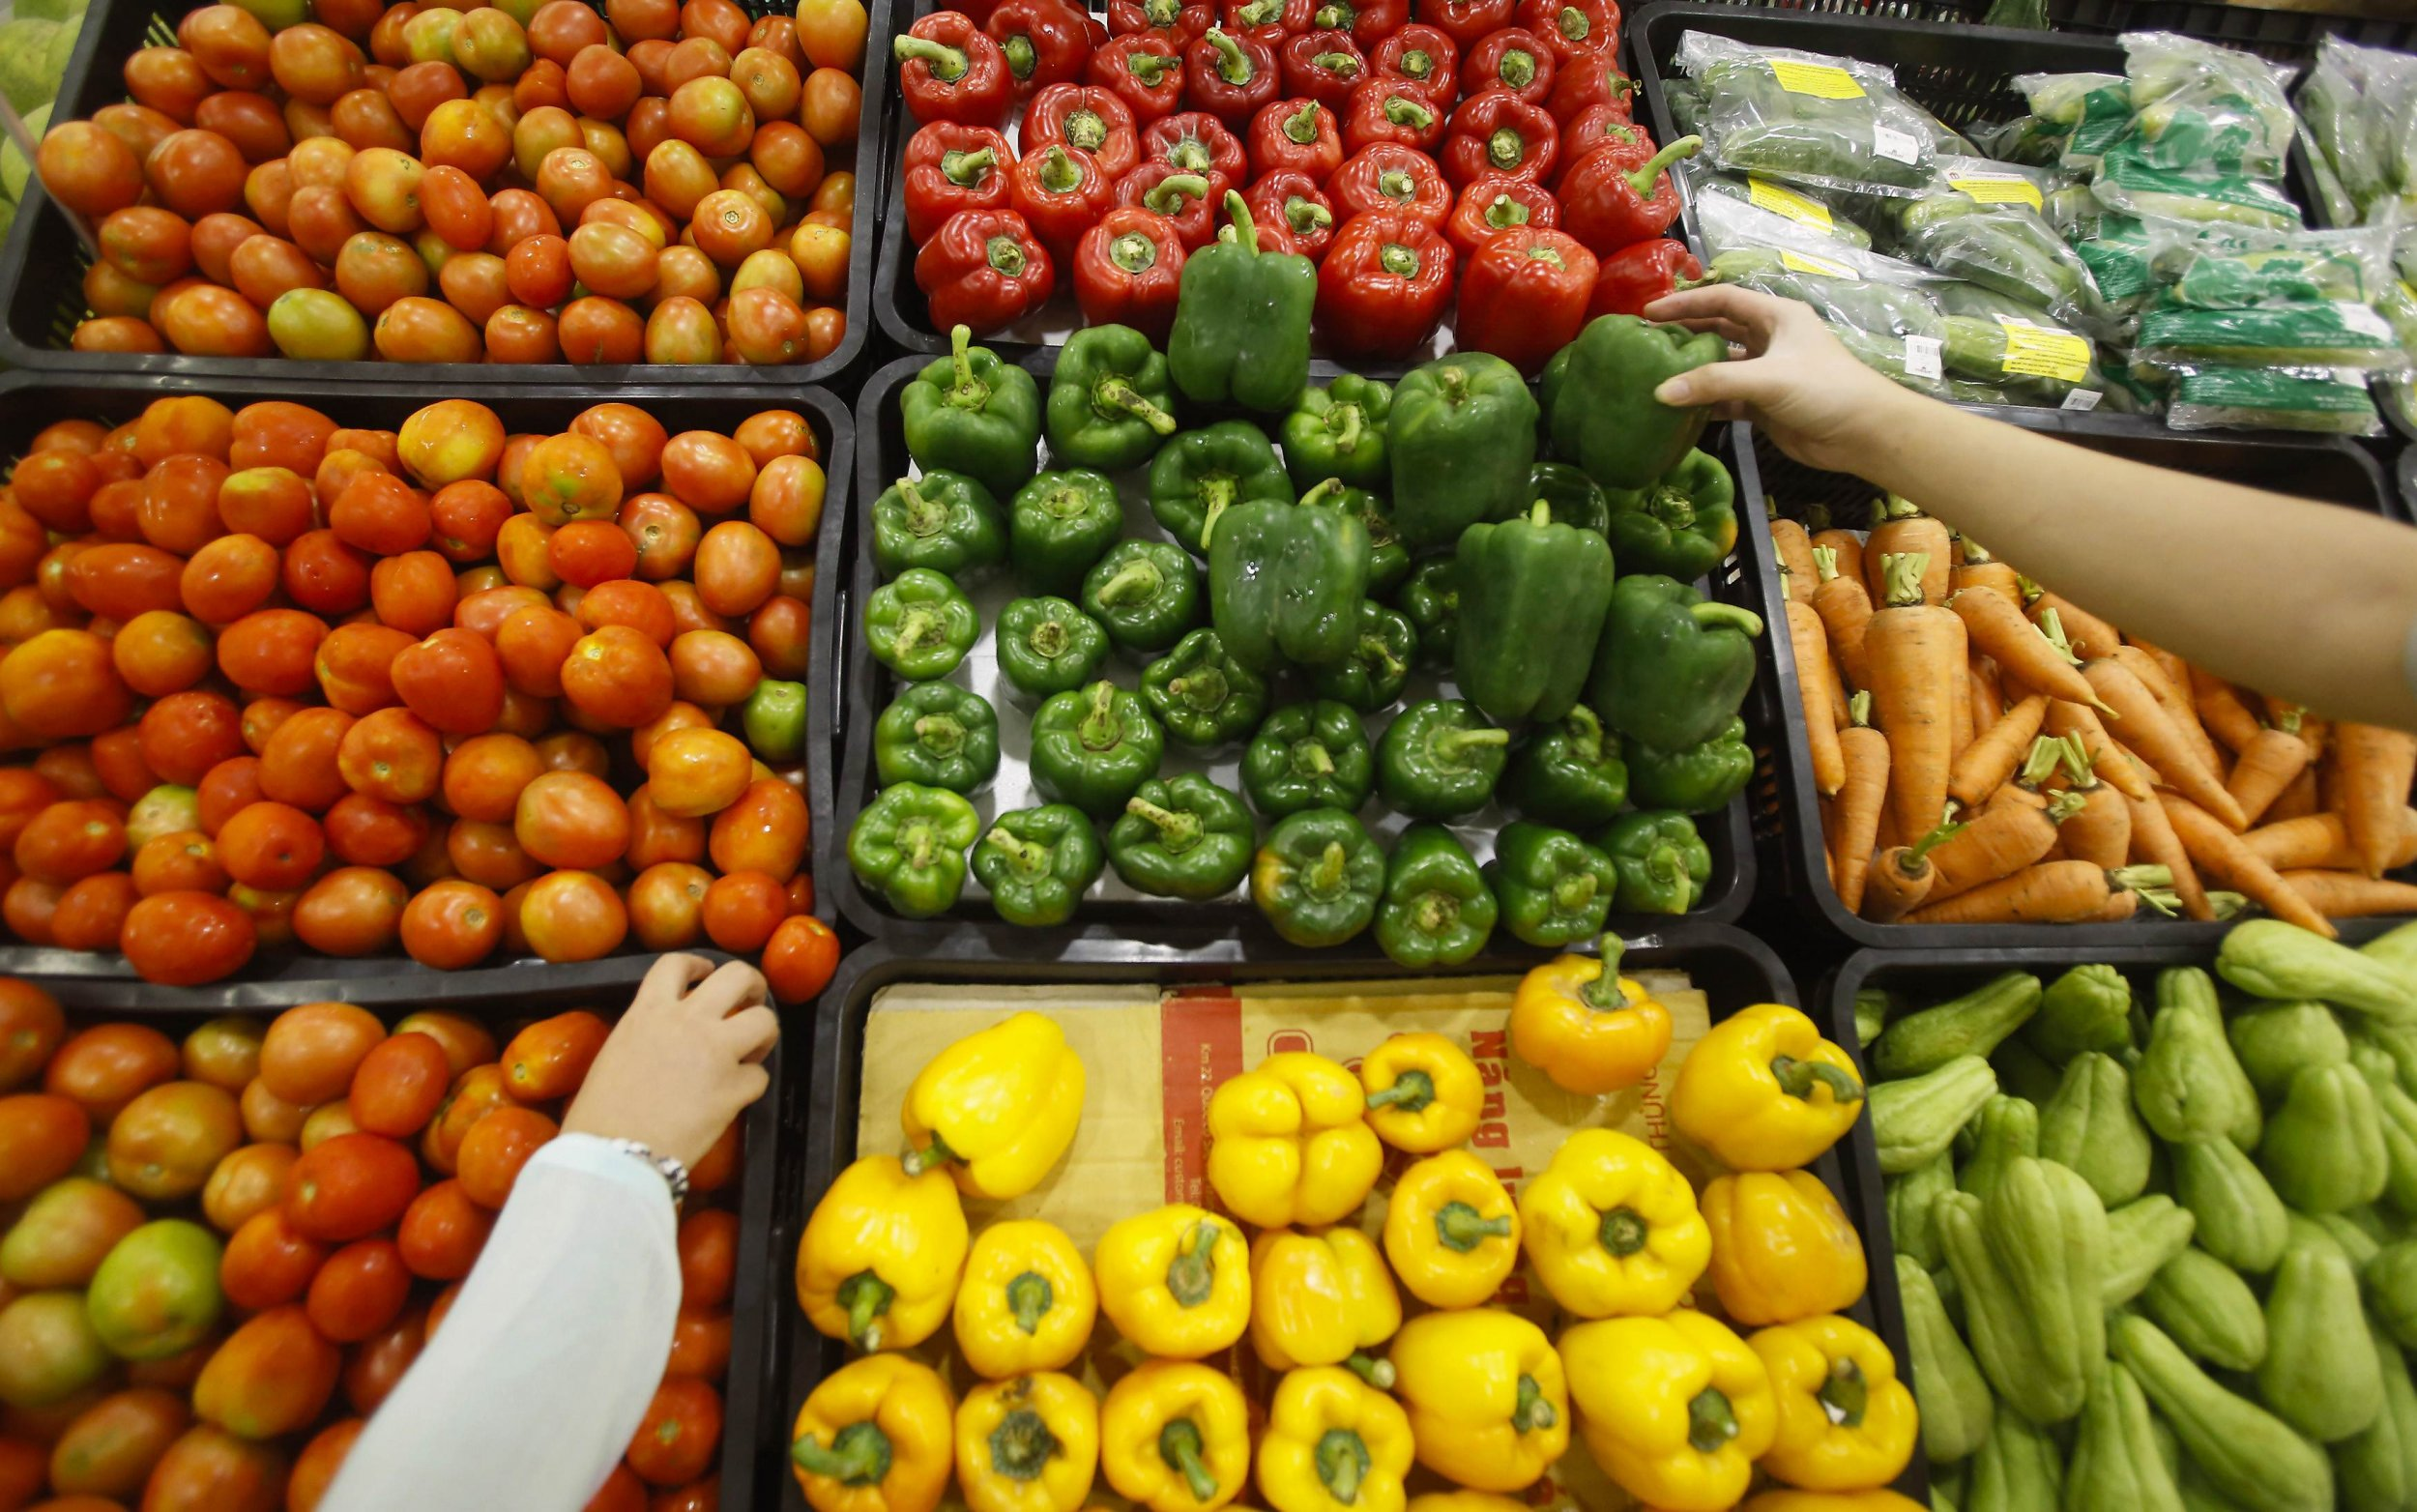 Healthy Food Is Growing More Expensive Than Unhealthy Food